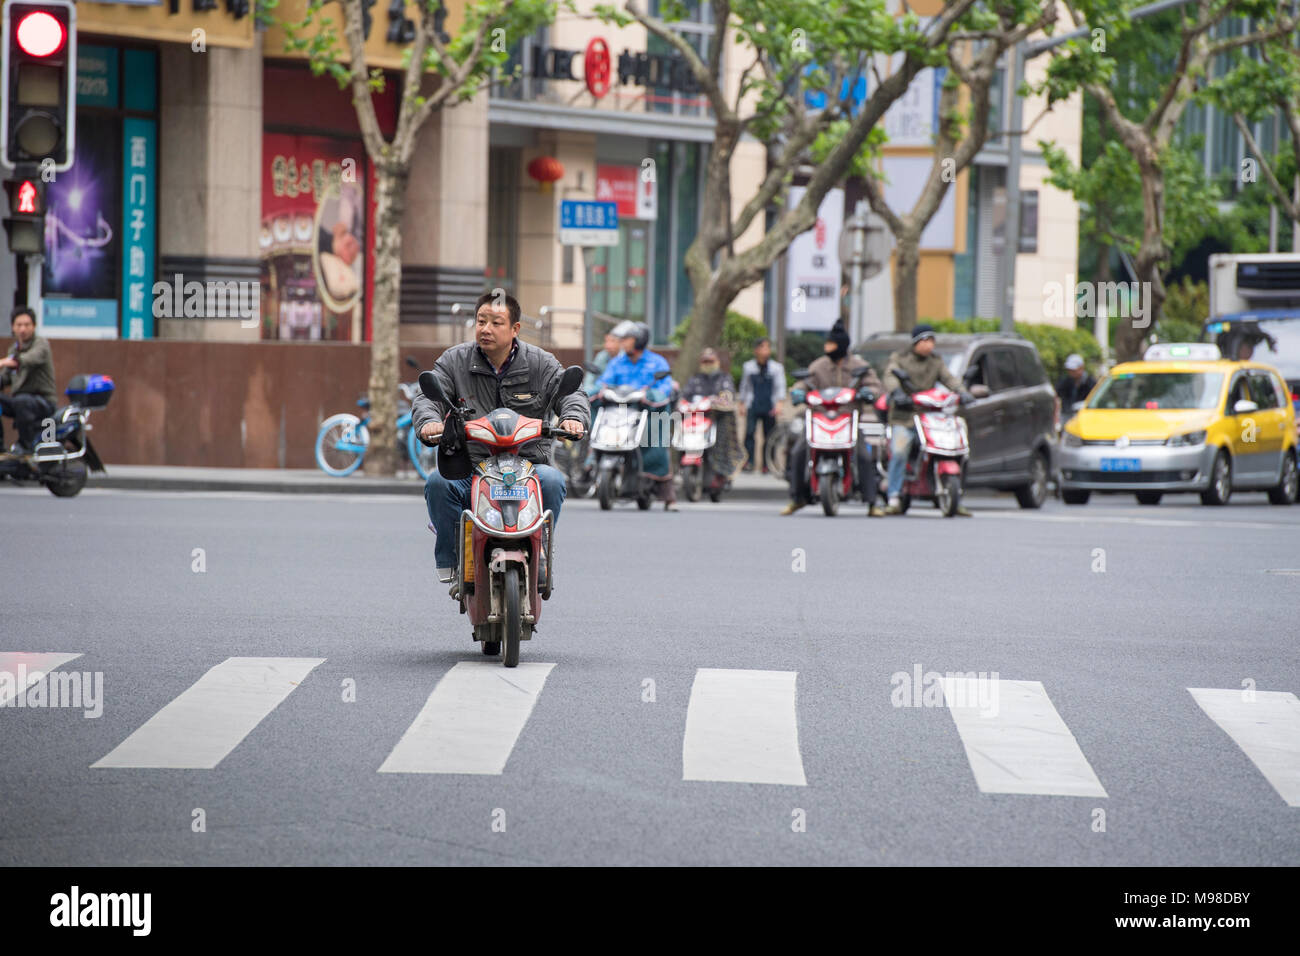 Man riding a scooter through the streets of Shanghai in China - Stock Image